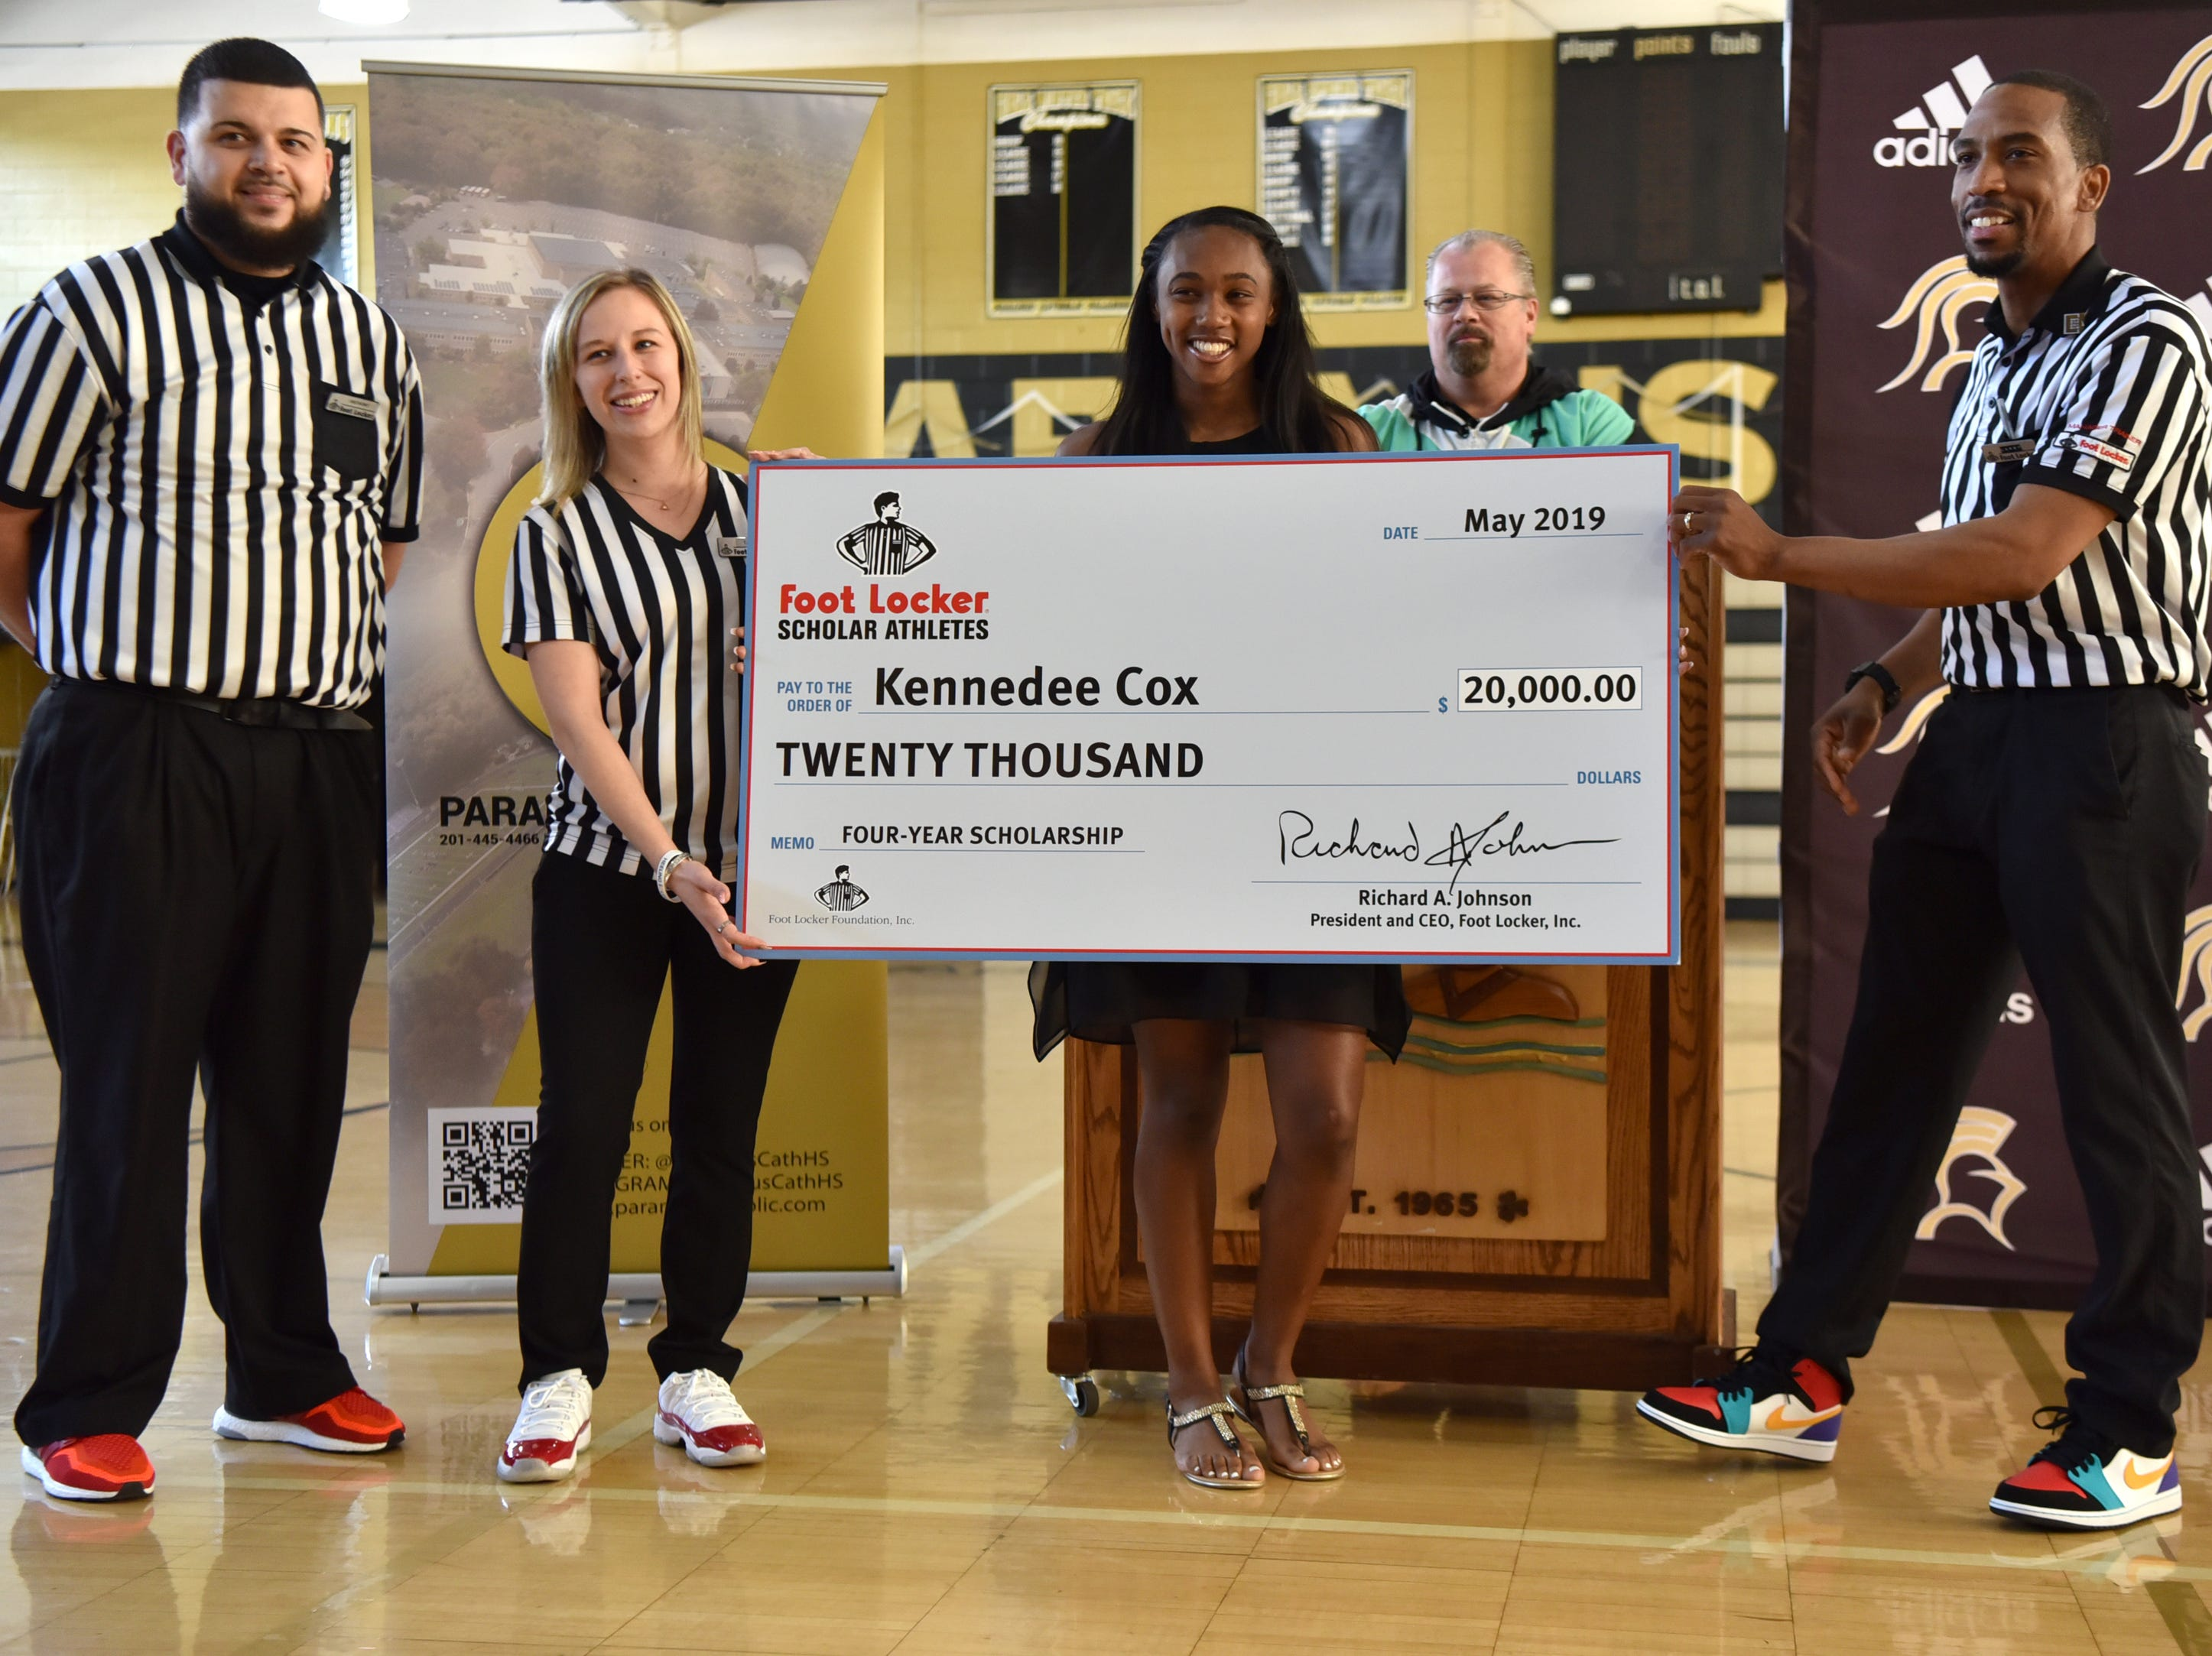 Paramus Catholic senior Kennedee Cox poses for a picture with  $20,000 check from the Foot Locker Scholar Athletes Program. Cox, of Teaneck, runs track at Paramus Catholic. Foot Locker representatives surprised Cox with the announcement at school on Wednesday, May 15, 2019.